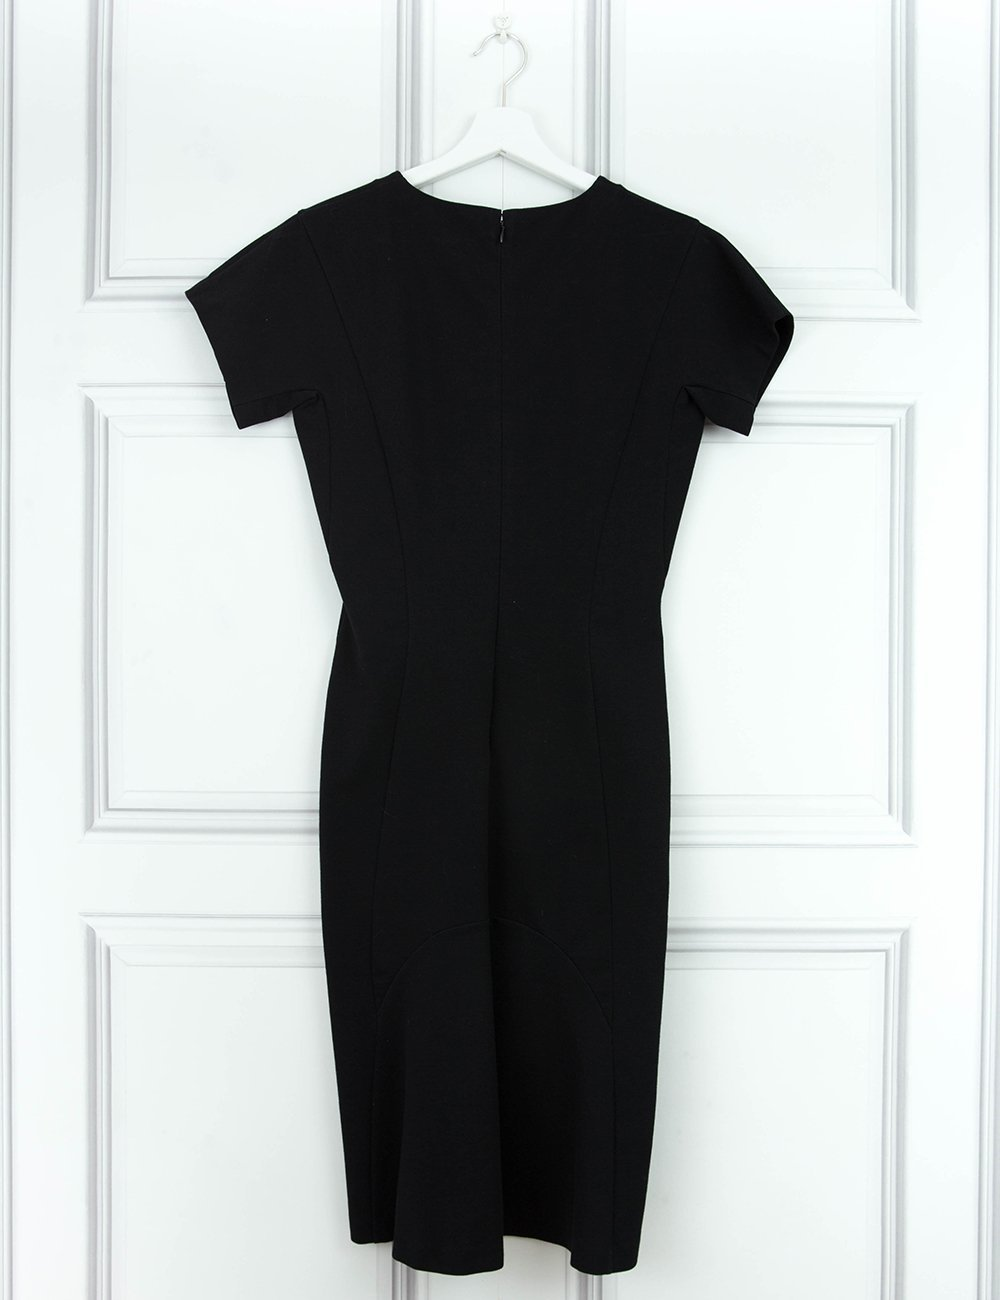 STELLA McCARTNEY CLOTHING Black knee-length shift dress 16UK- My Wardrobe Mistakes